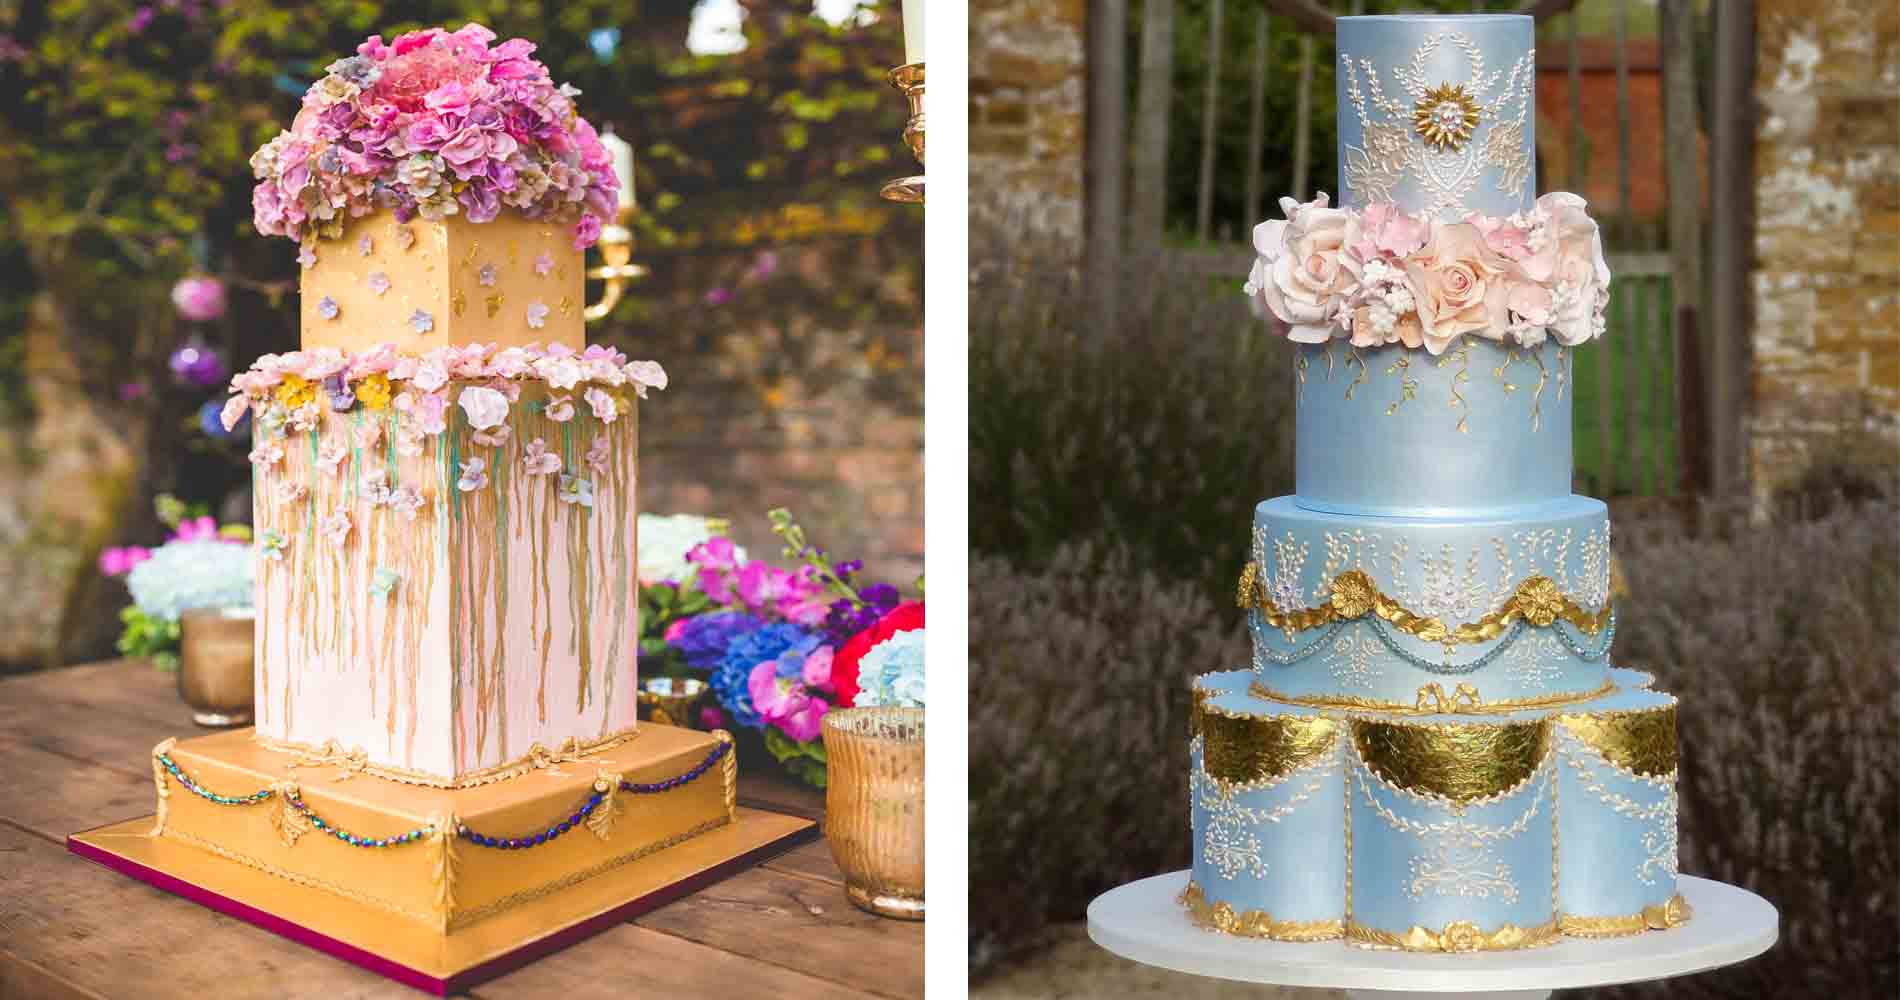 Creating Luxury Cakes With Unique Cakes By Yevnig